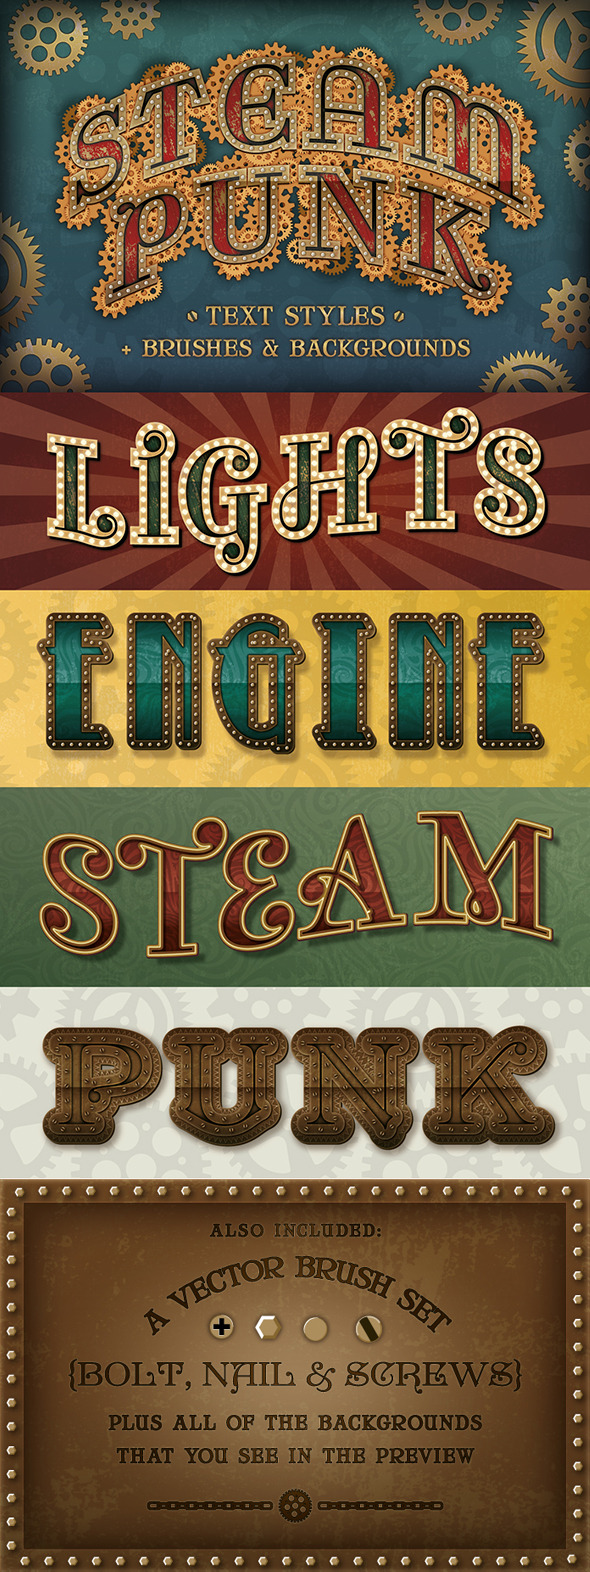 Steam Punk Text Styles + Brushes & Backgrounds - Styles Illustrator